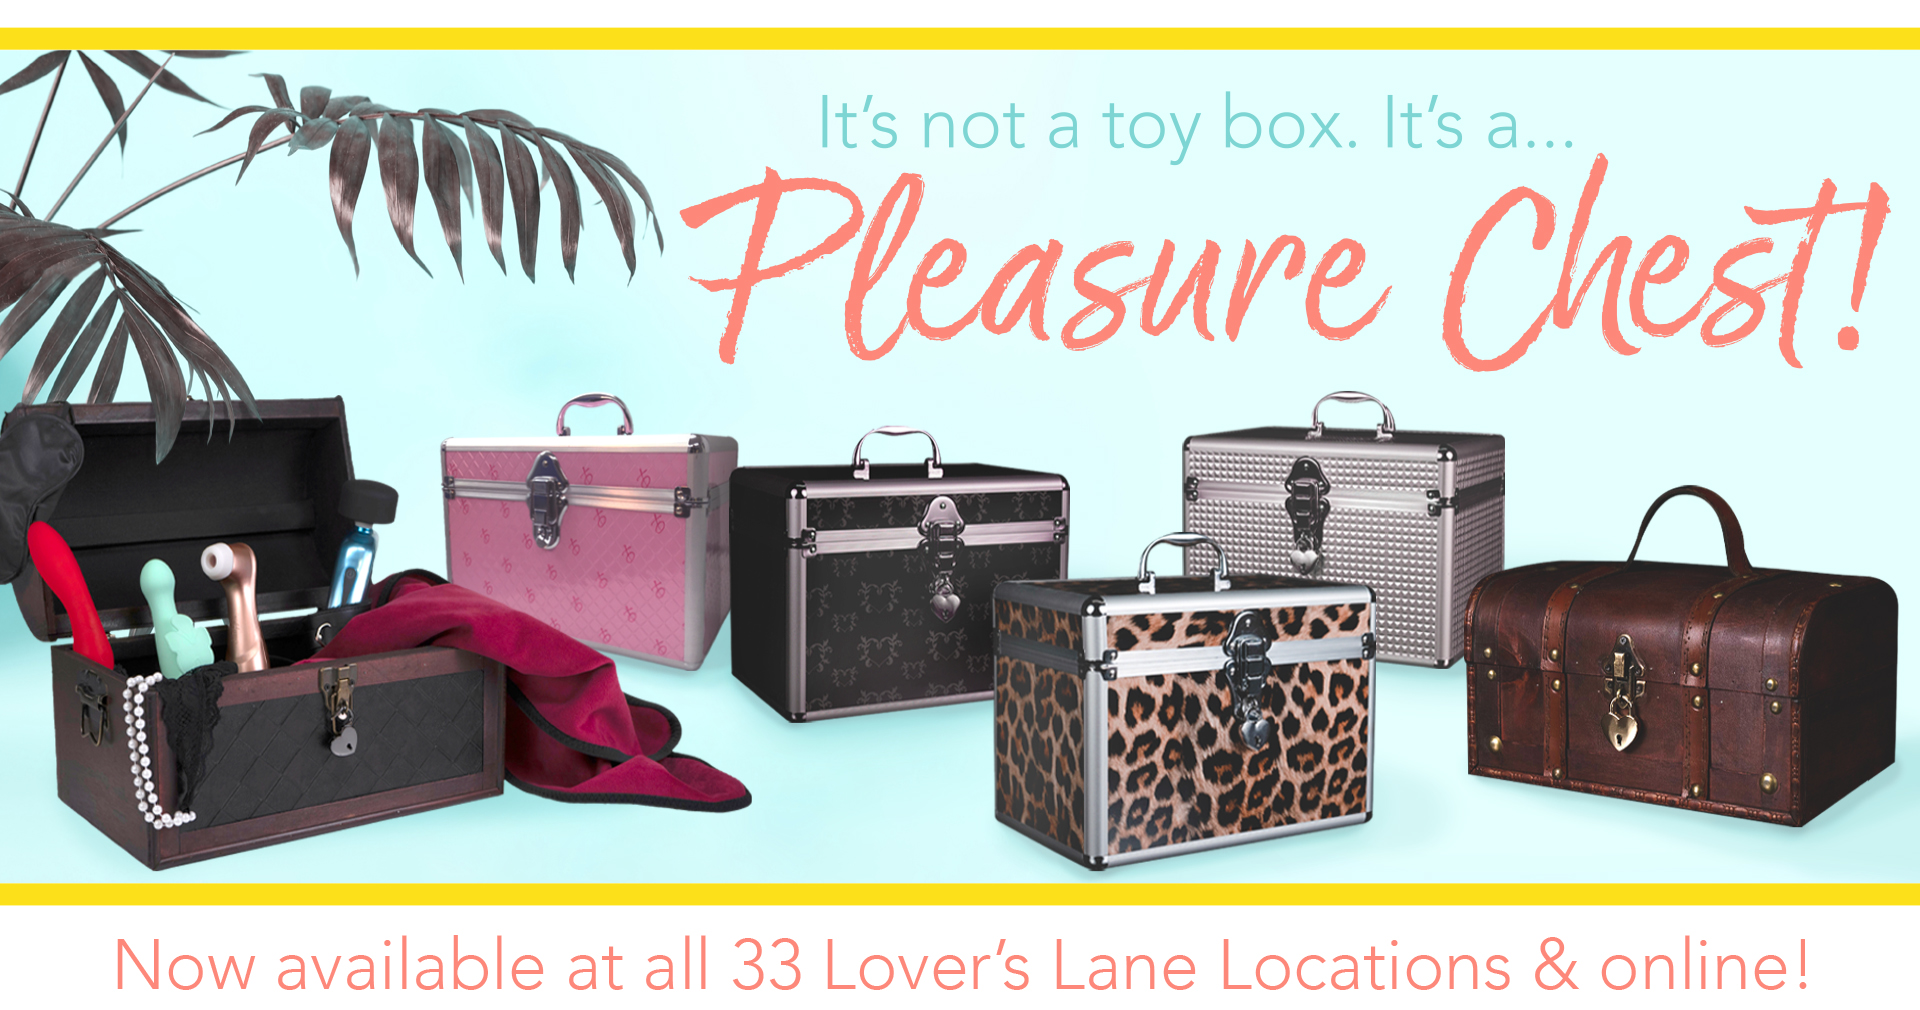 It's not a toy box...it's a Pleasure Chest. Now available at all 33 Lover's Lane locations and online!